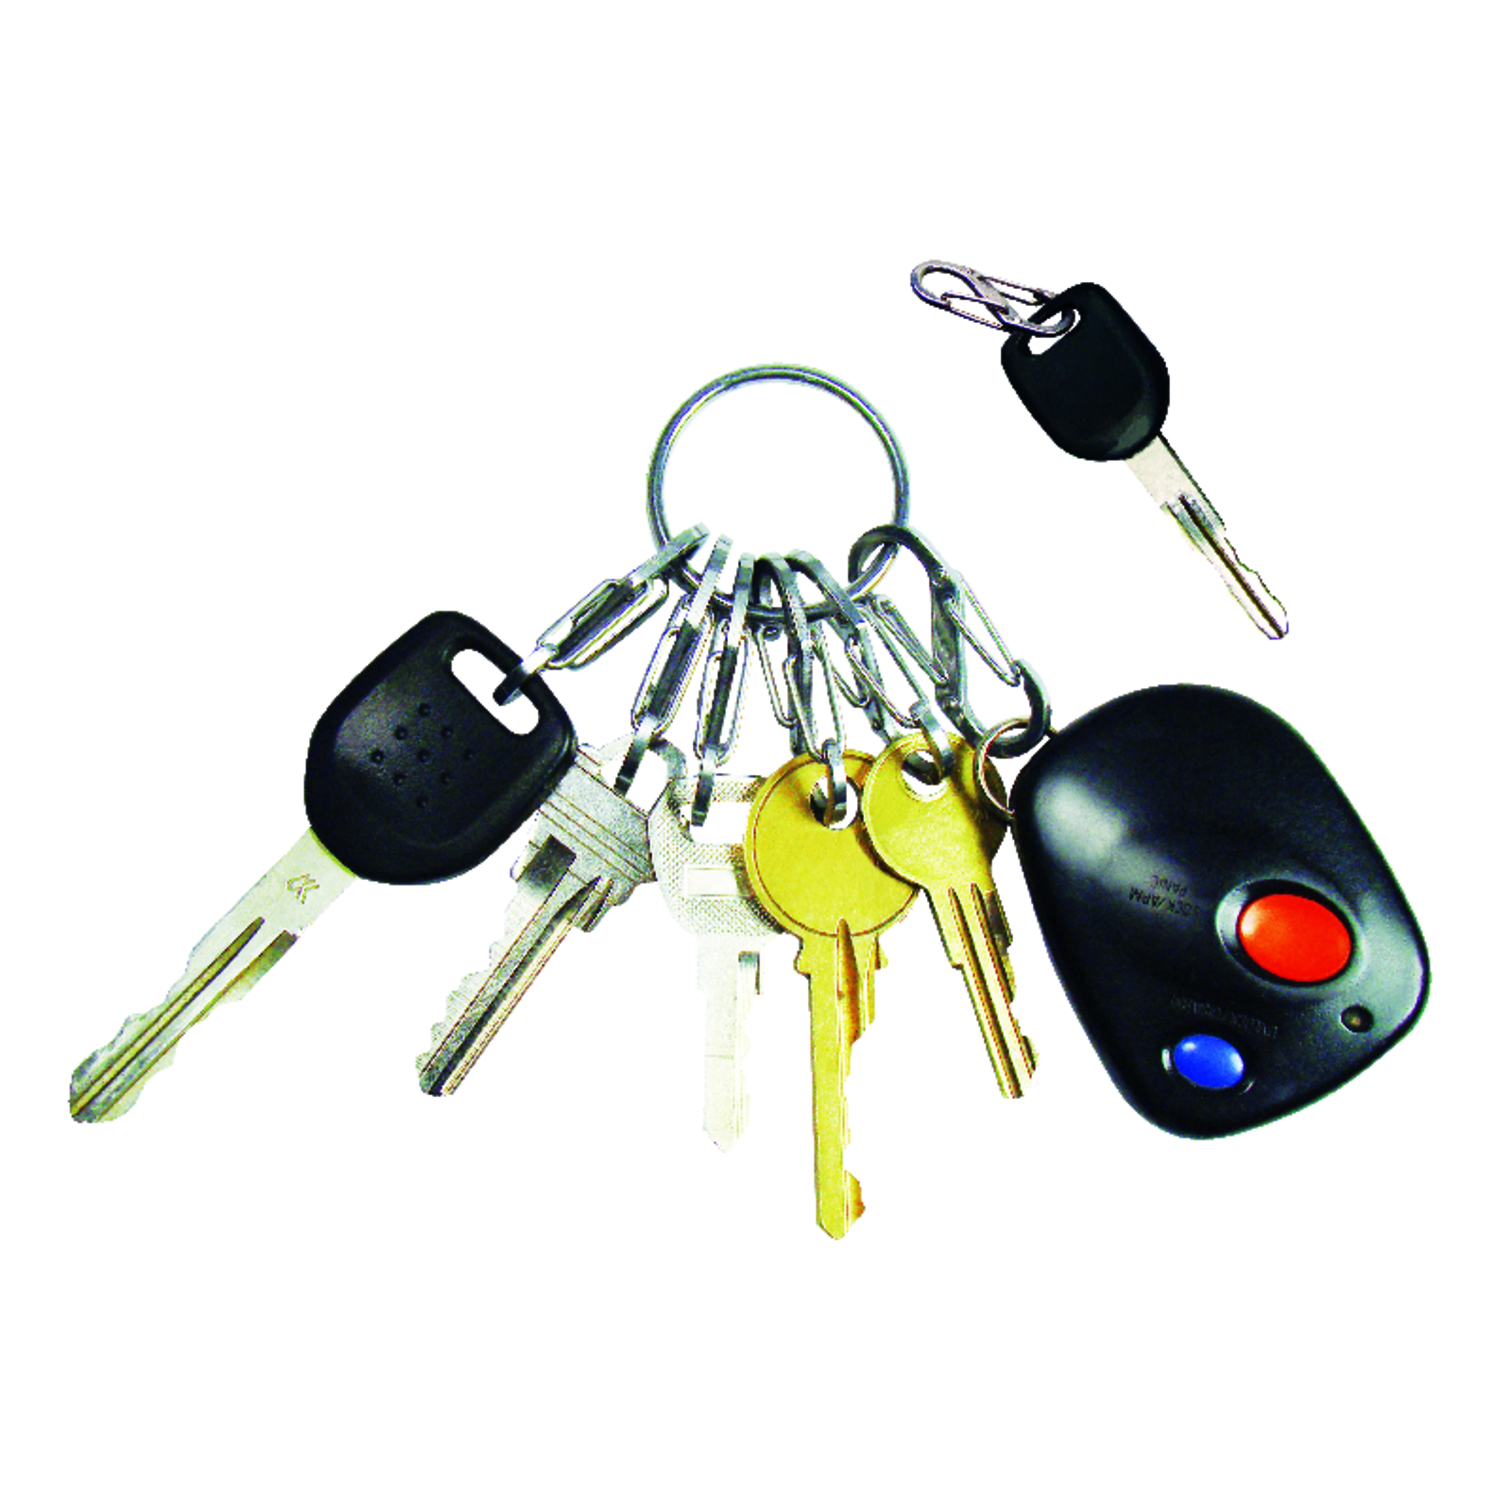 Nite Ize  KeyRing Steel  2 in. Dia. Stainless Steel  Silver  KeyRing  Key Ring